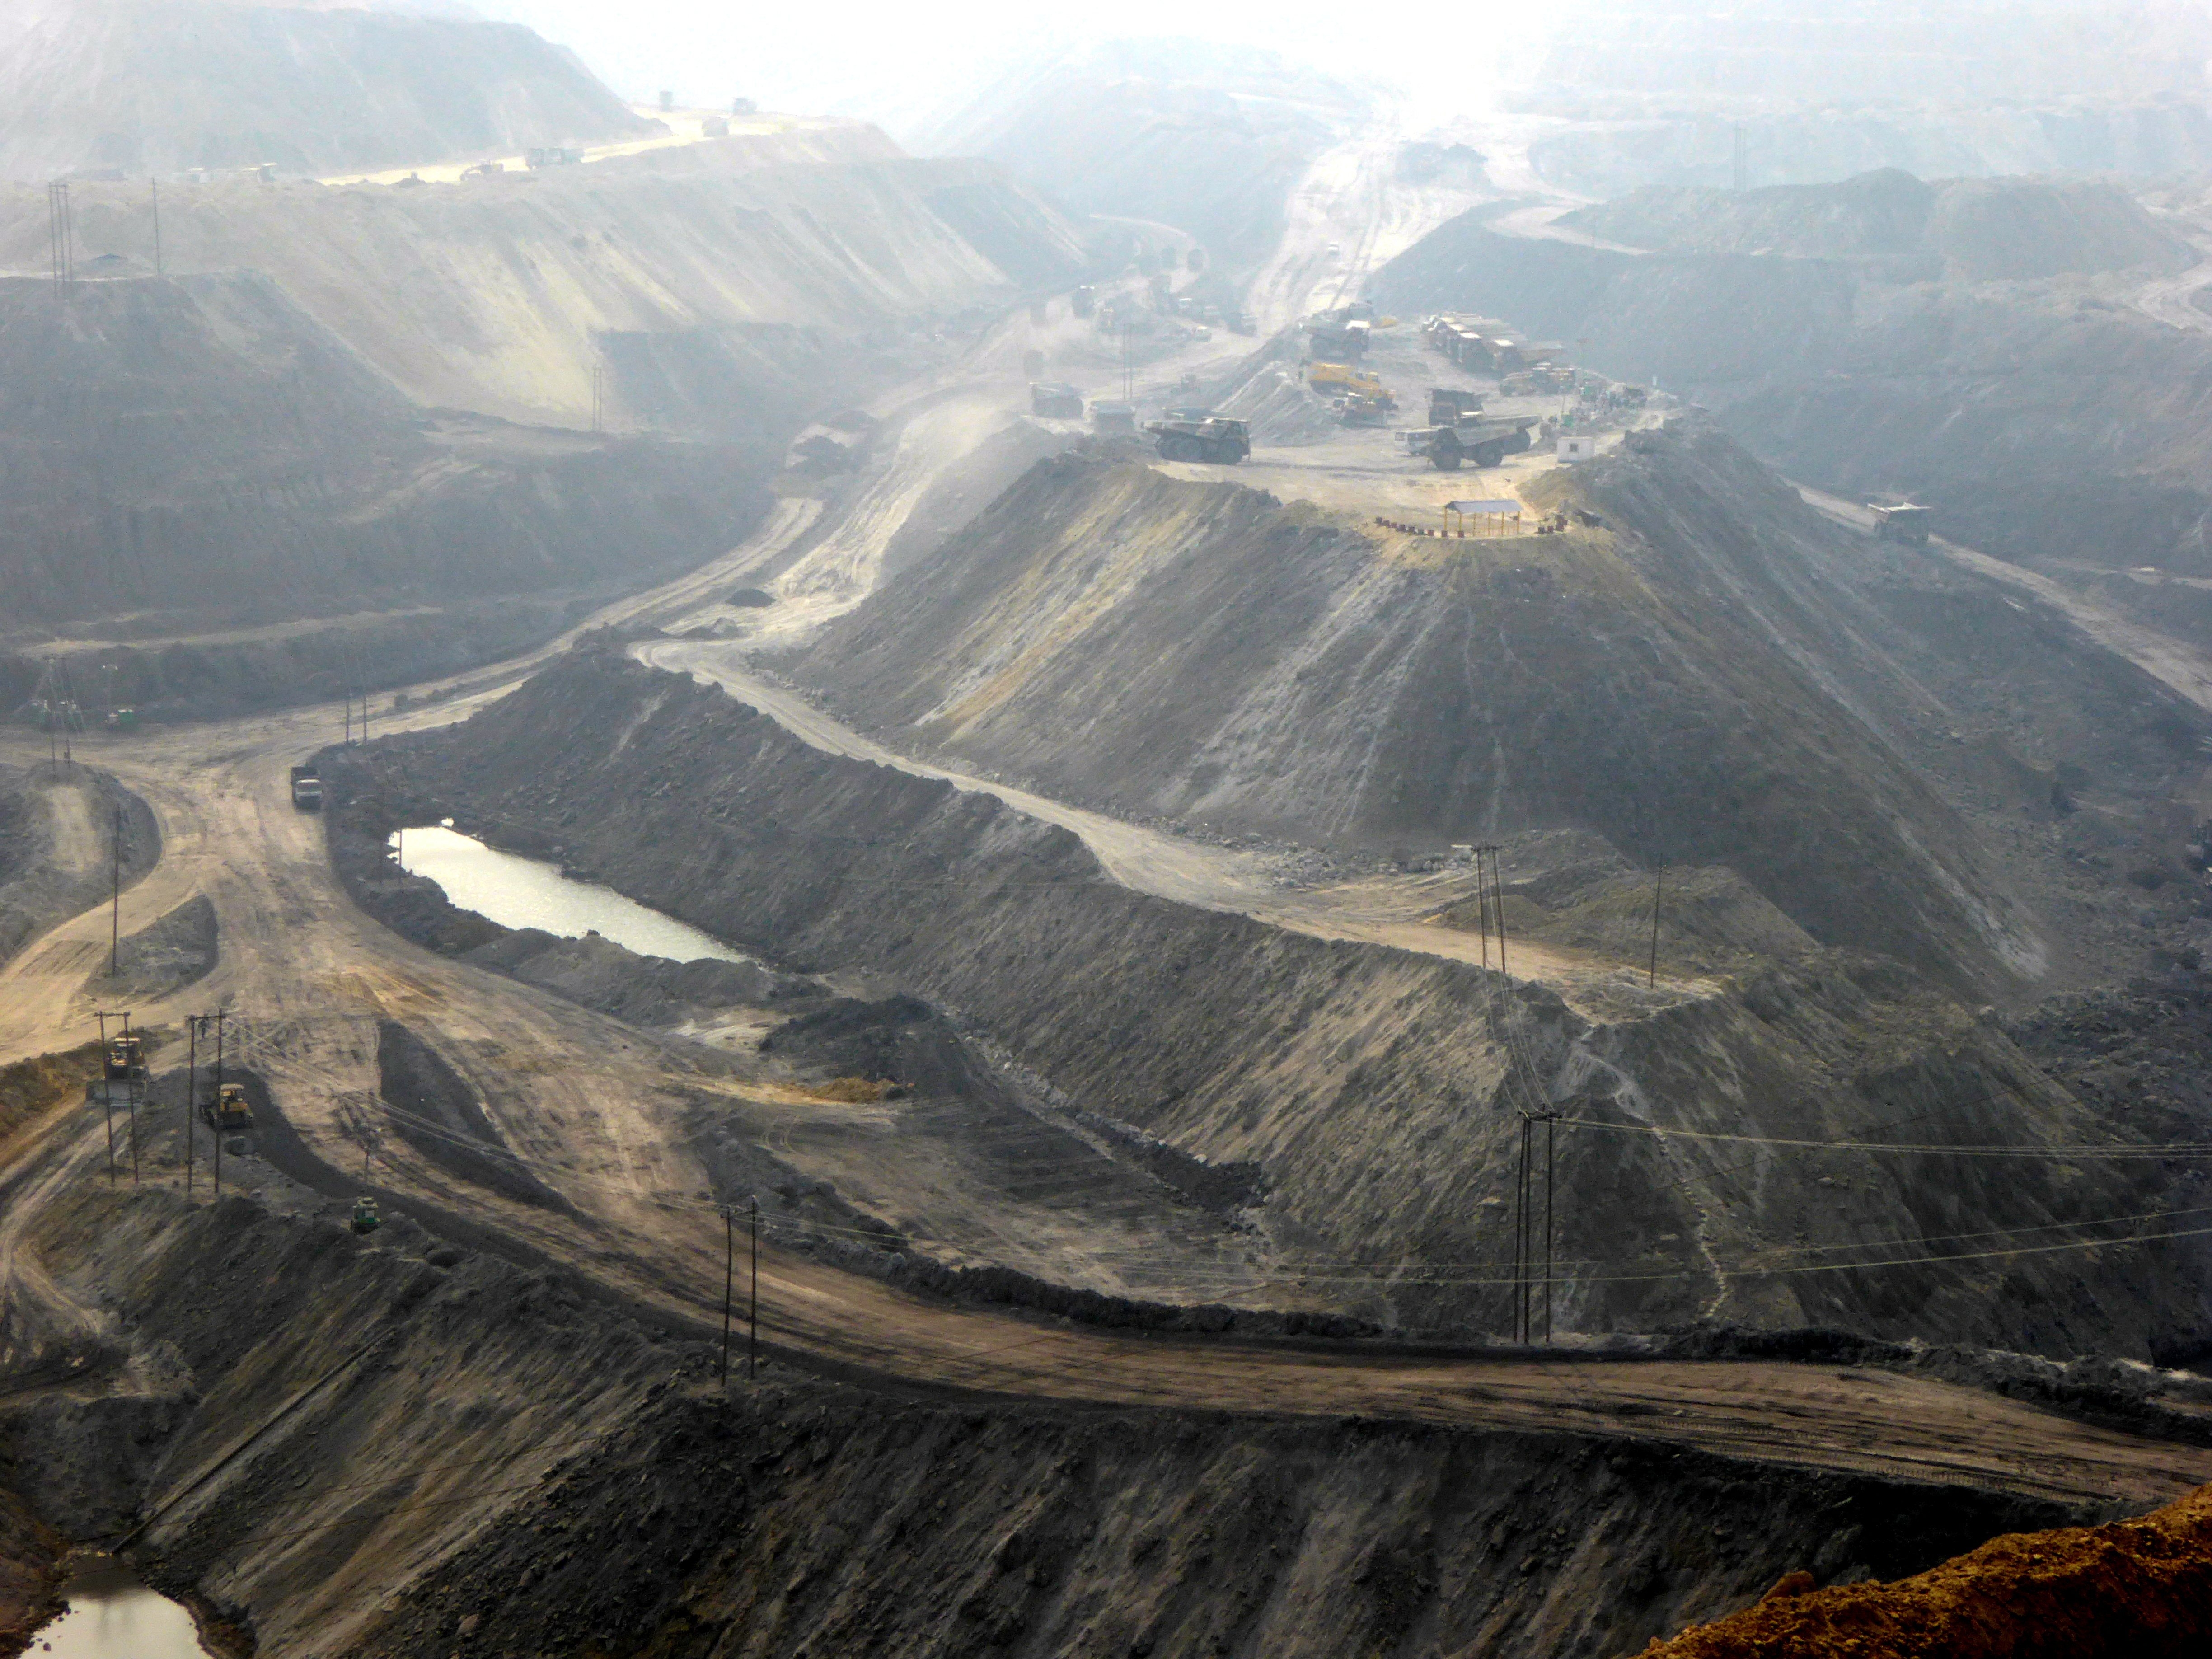 A (non-Adani) coal mine in Jharkhand, India. This is what's planned for the villages, forests and farmland of Gondalpura. Photo Geoff Law